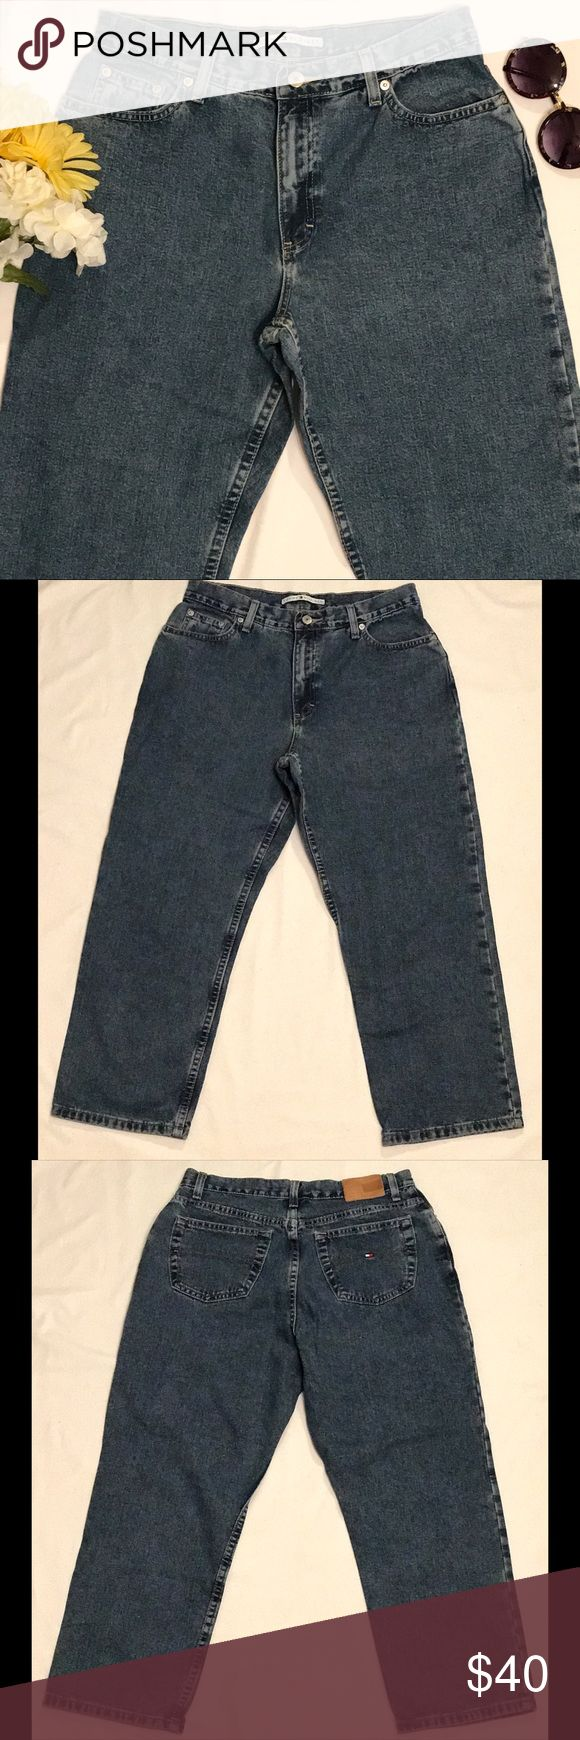 """Tommy Hilfiger vintage high waist mom jeans Tommy Hilfiger vintage high waist mom jeans. Chic, on trend style. Ankle straight leg jeans. Medium wash. Great condition. 100% cotton. Size 10. 11"""" rise, 15"""" waist, 26"""" inseam. Tommy Hilfiger Jeans Straight Leg"""